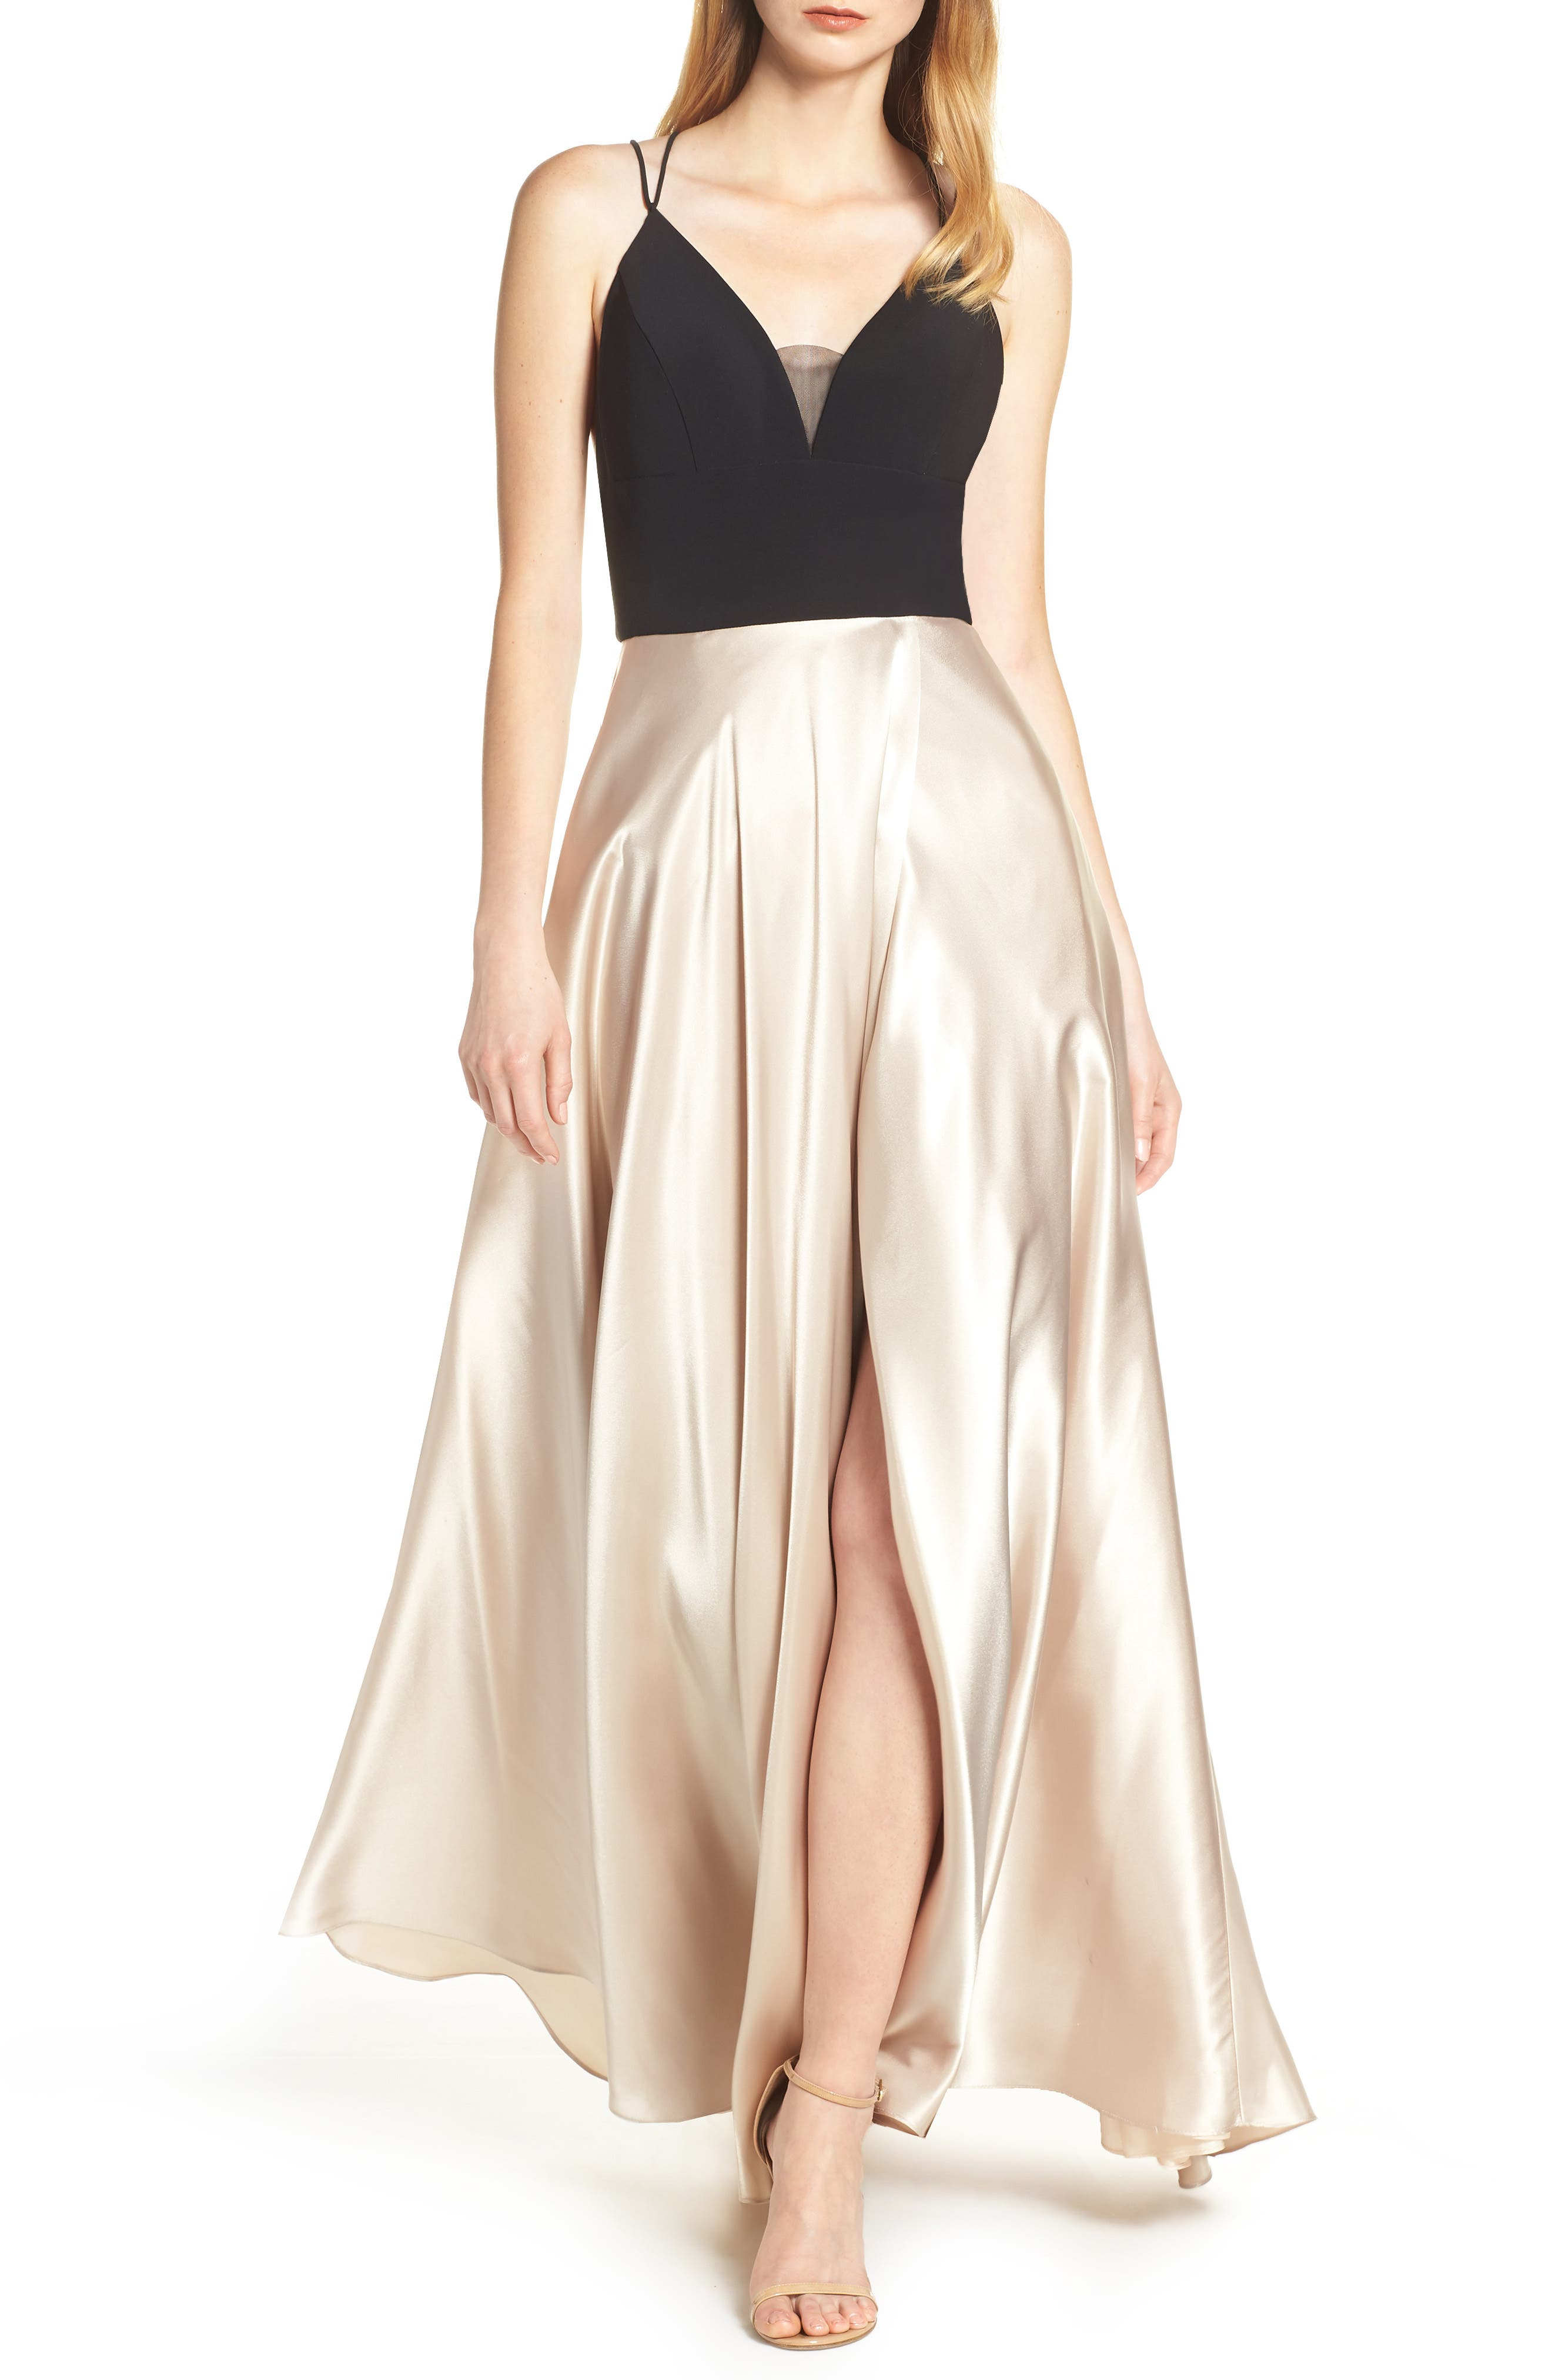 BLONDIE NITES, Strappy Back Crepe & Charmeuse Evening Dress, Main thumbnail 1, color, BLACK/ GOLD